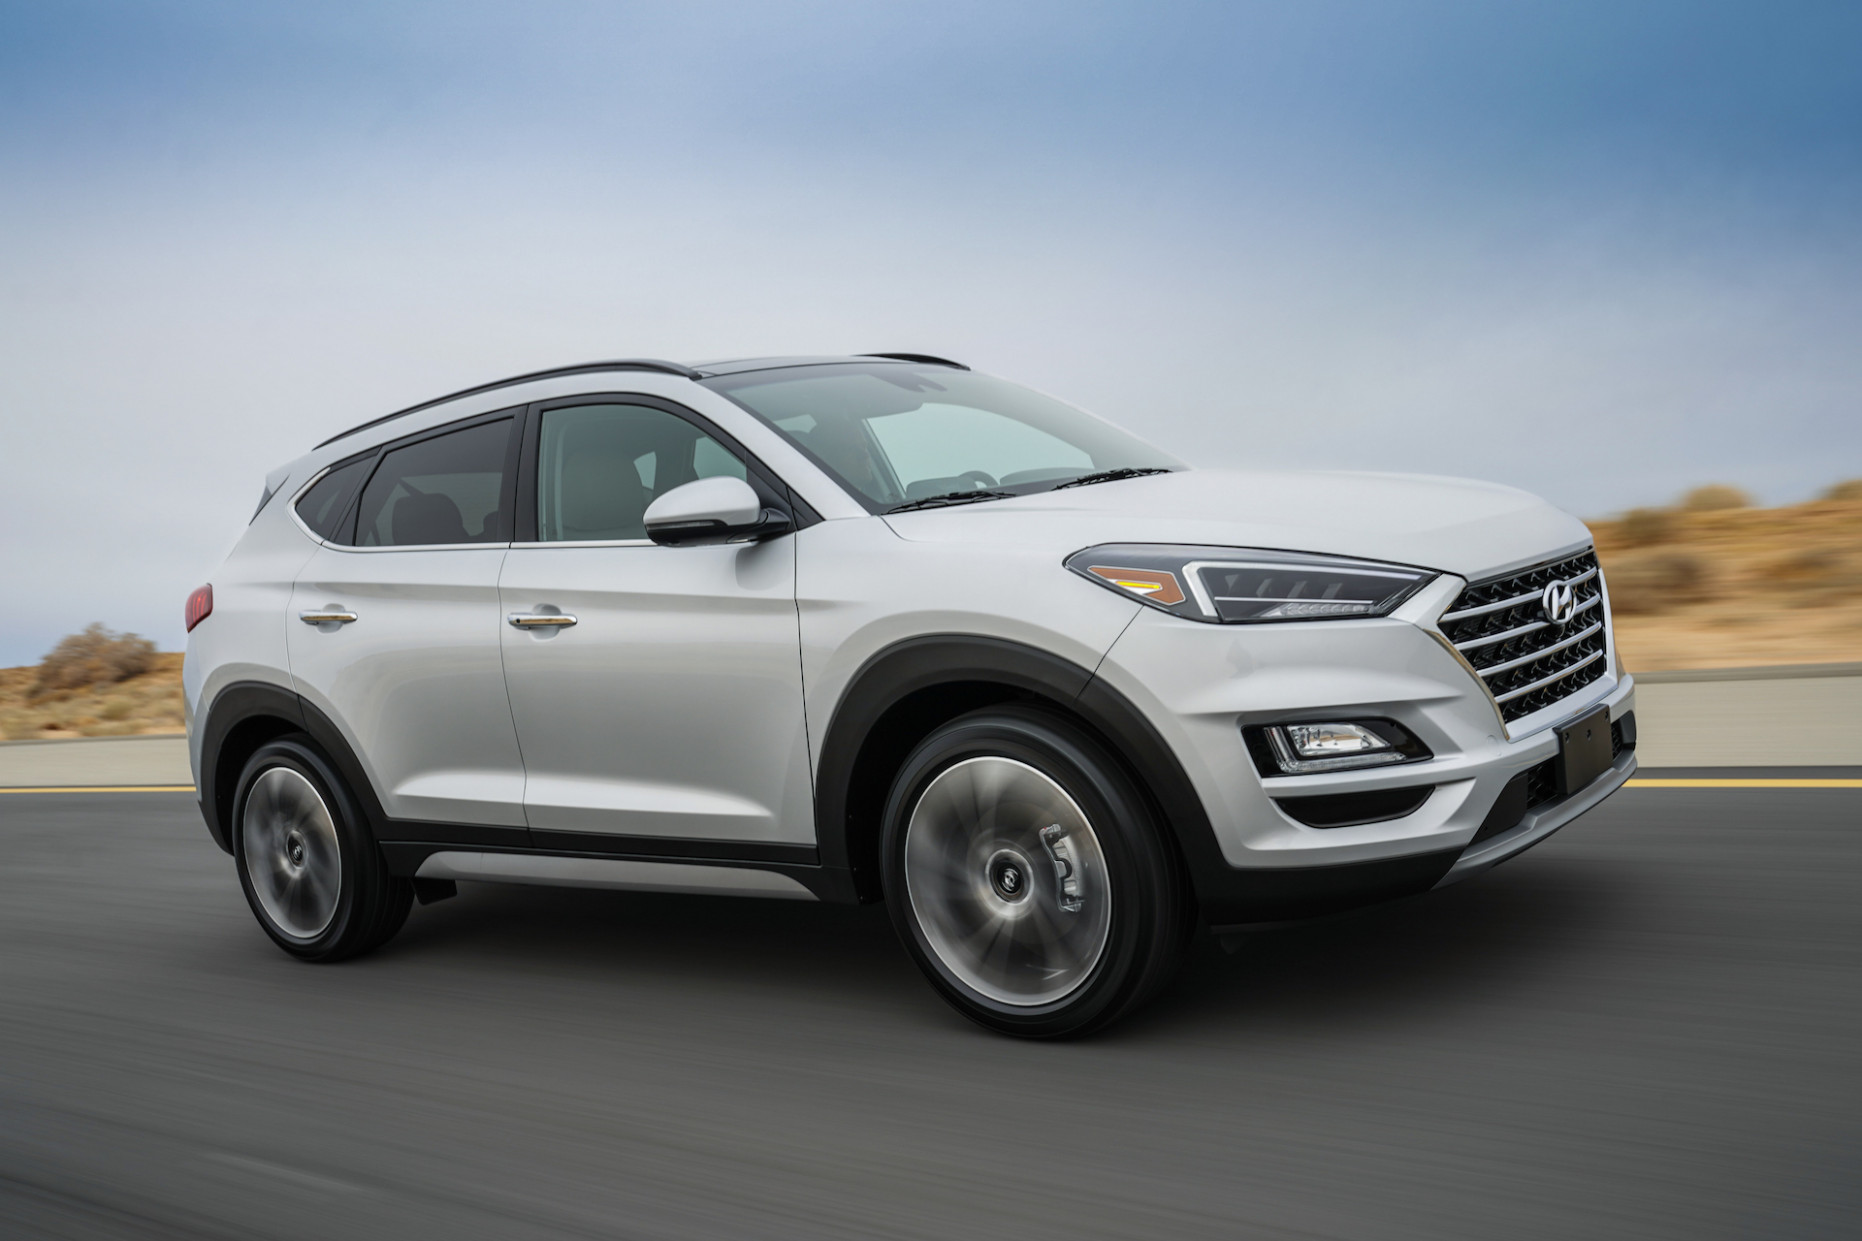 8 Hyundai Tucson Review, Ratings, Specs, Prices, and Photos ..